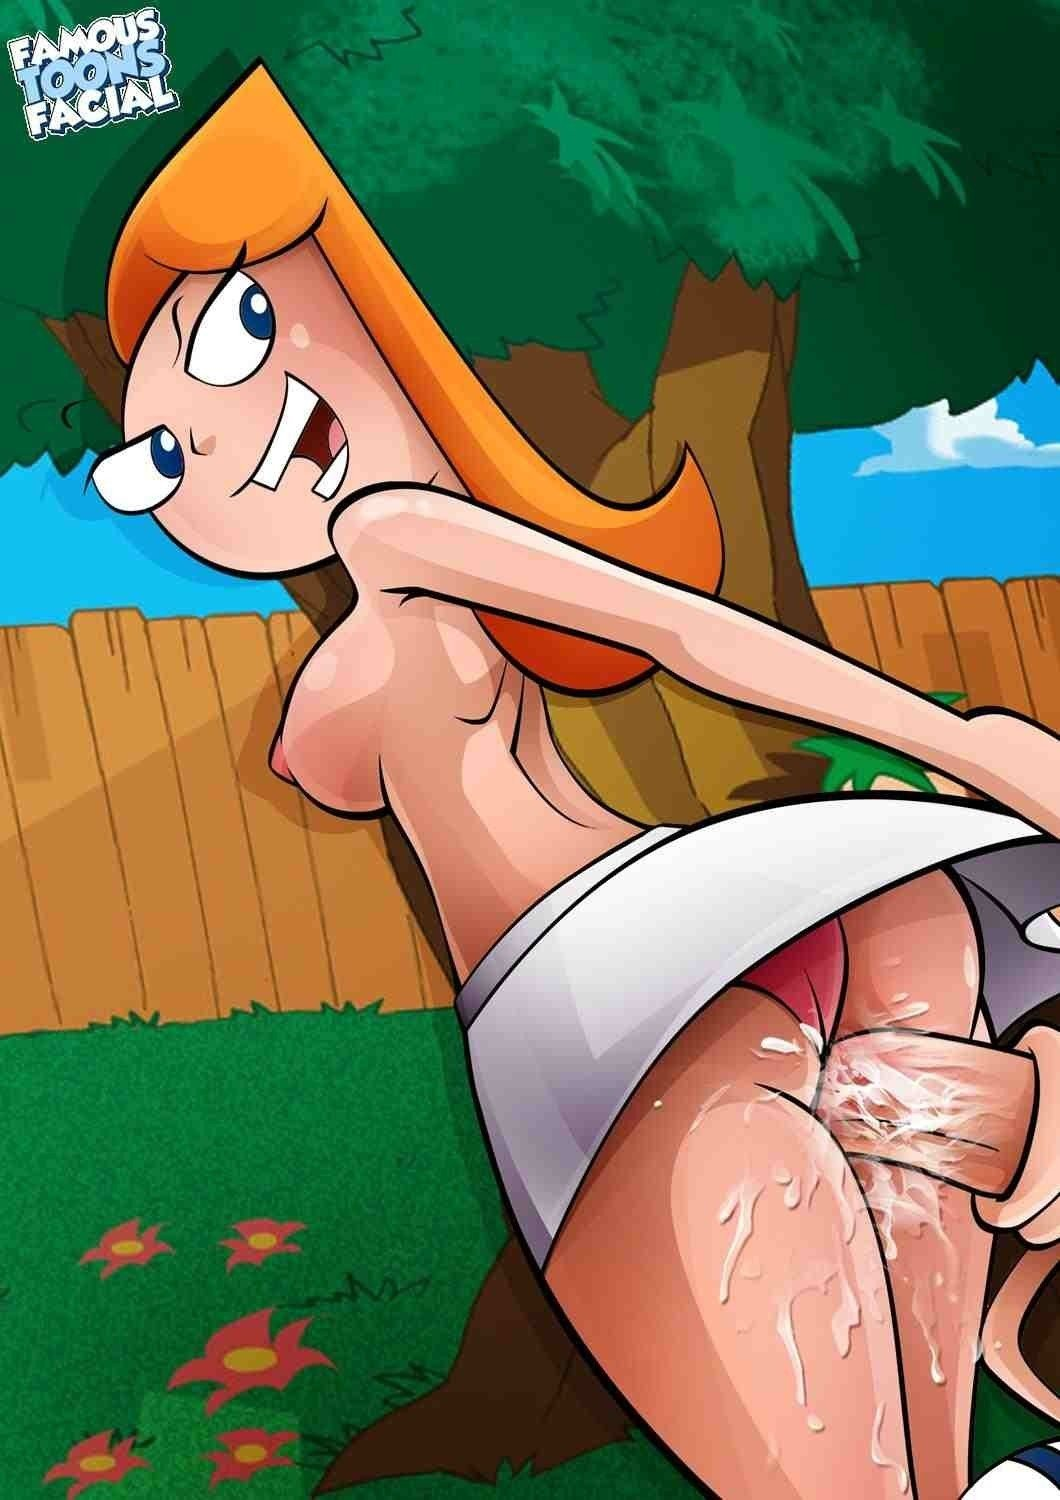 Sexy girls sex phineas y ferb olsen twins naked